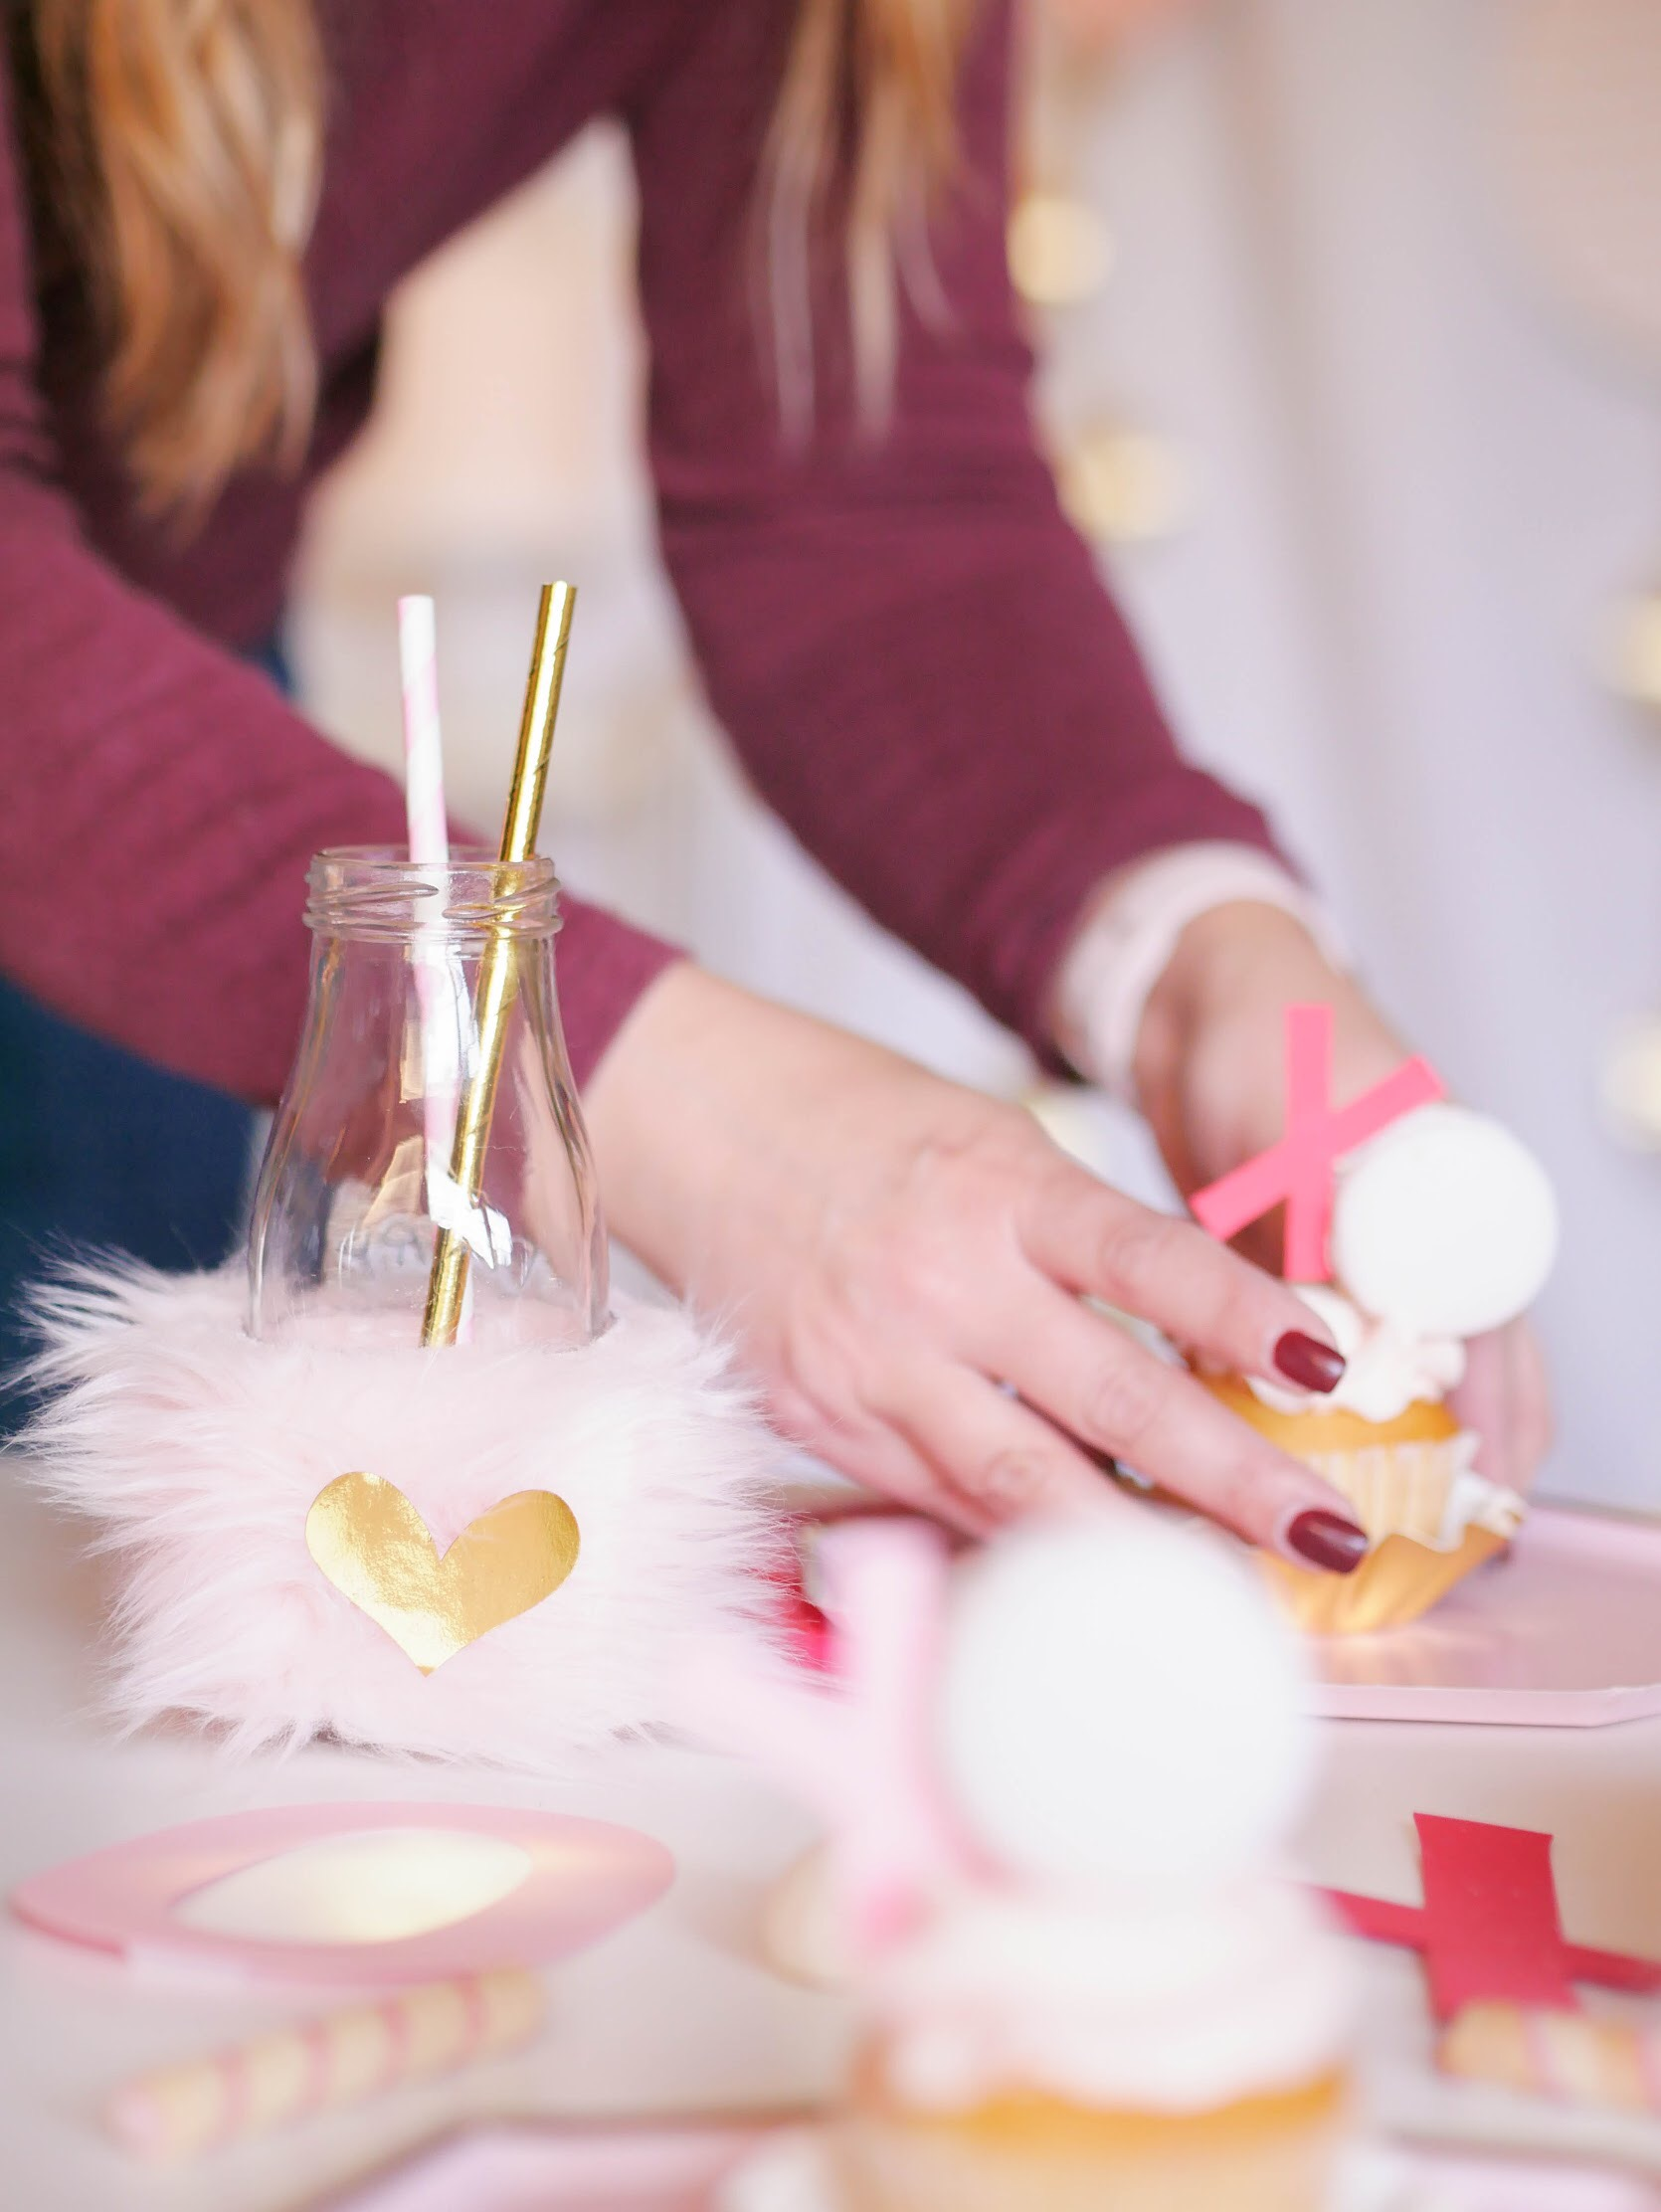 Find out how to style the cutest Valentine's Day Dessert Table on a Bar Cart. Complete with cupcake toppers made with macarons to create a super sweet treat. See more from Mint Event Design atwww.minteventdesign.com#valentinesdaytreats #valentinesday #barcart #valentinesparty #partydecor #partyideas